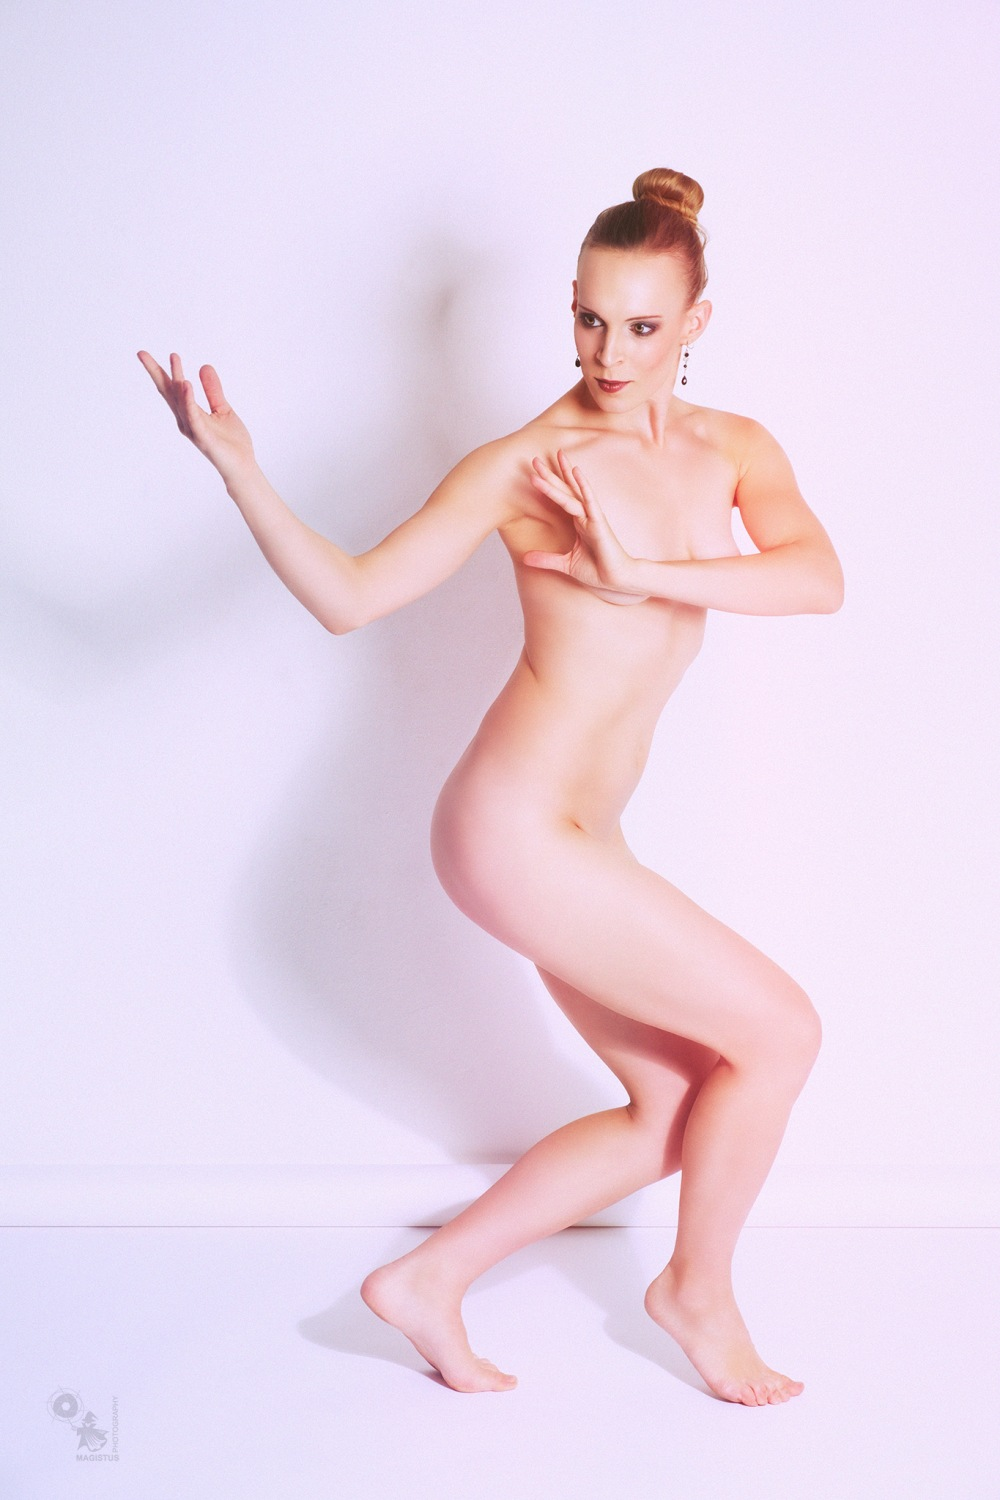 Fine Art - fantastic nude art photo of a wonderful model posing naked and elegant - © by Magistus